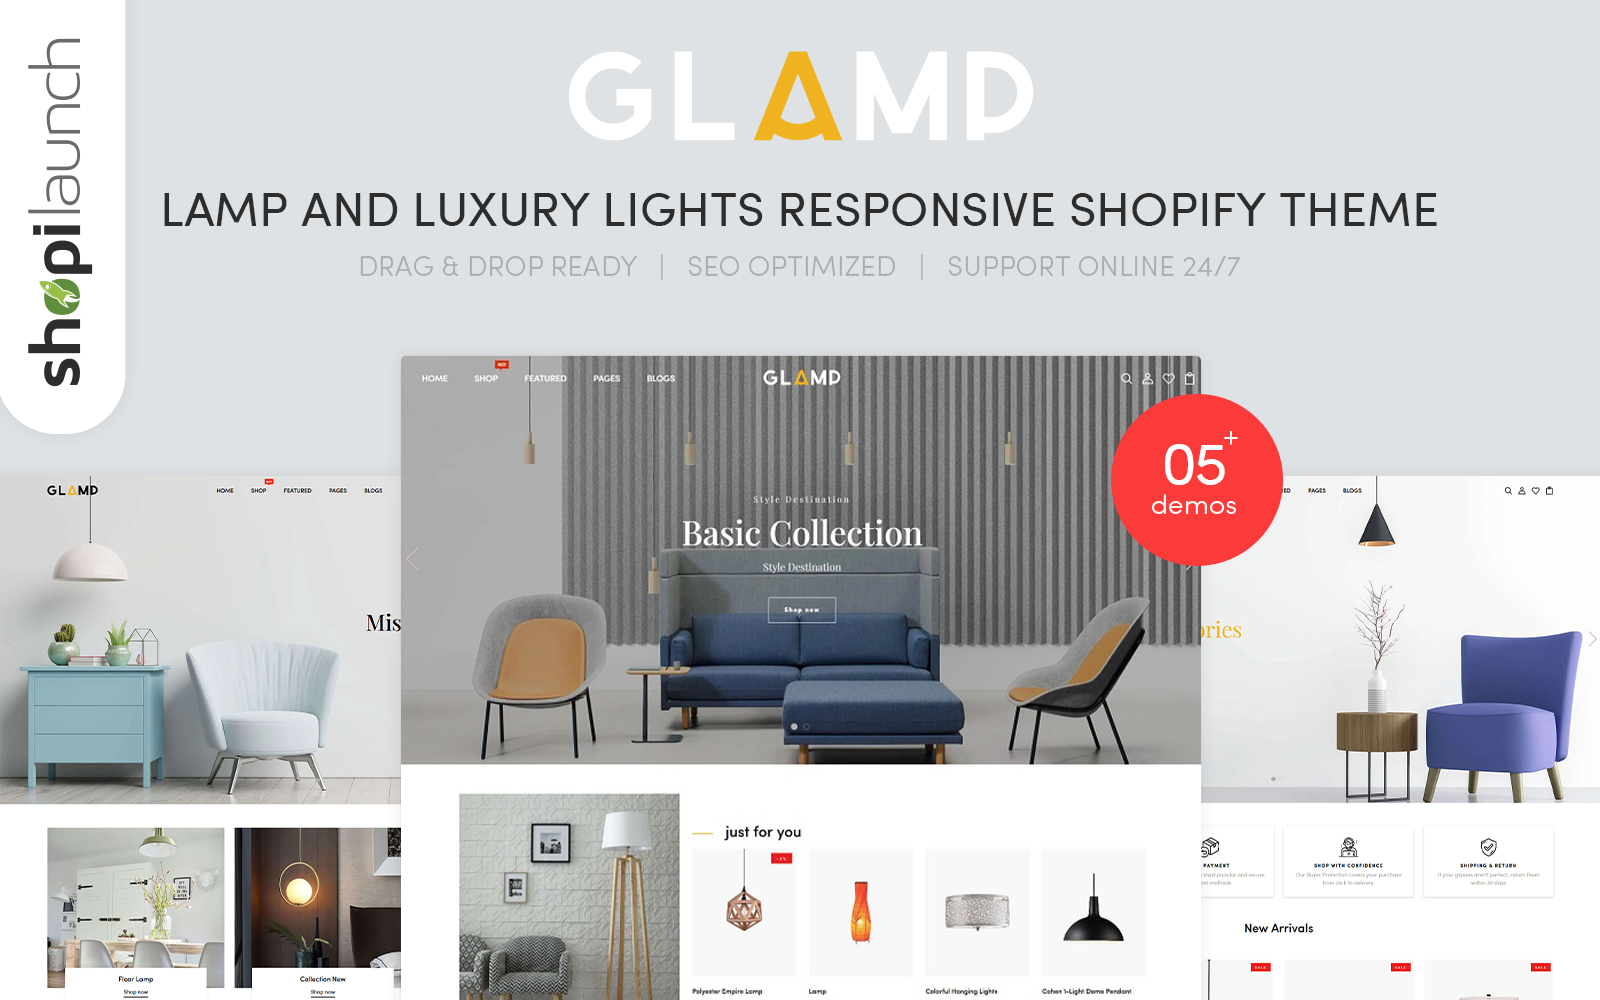 Responsivt Glamp - Lamp & Luxury Lights Responsive Shopify-tema #125953